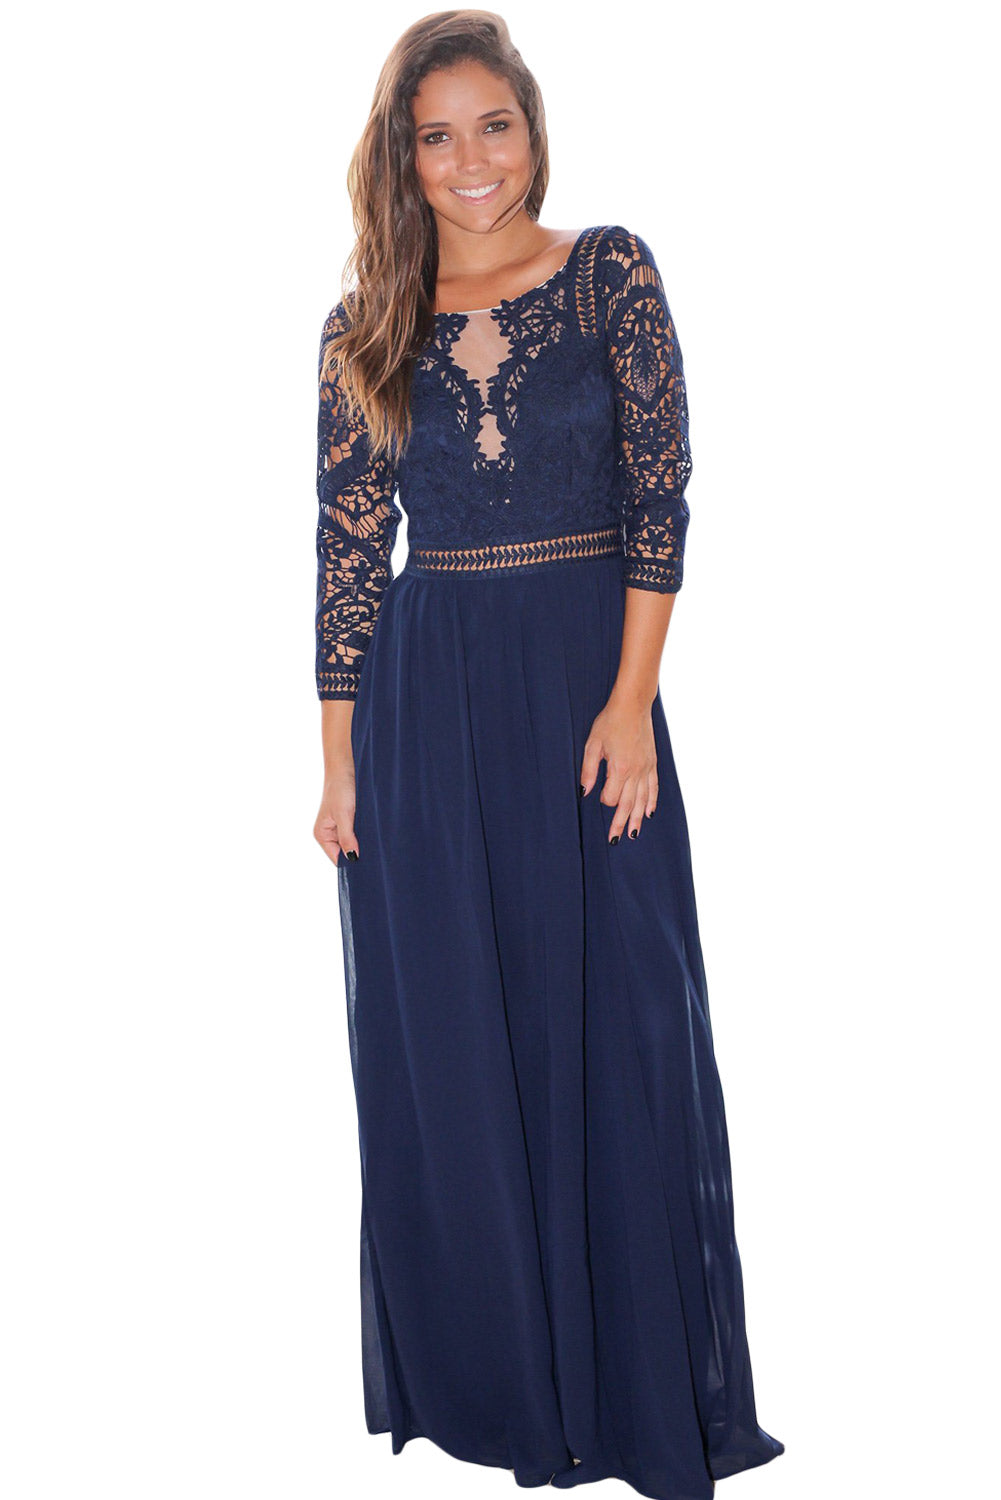 Her Fashion Gorgeous Navy Lace Crochet Quarter Sleeve Maxi Dress